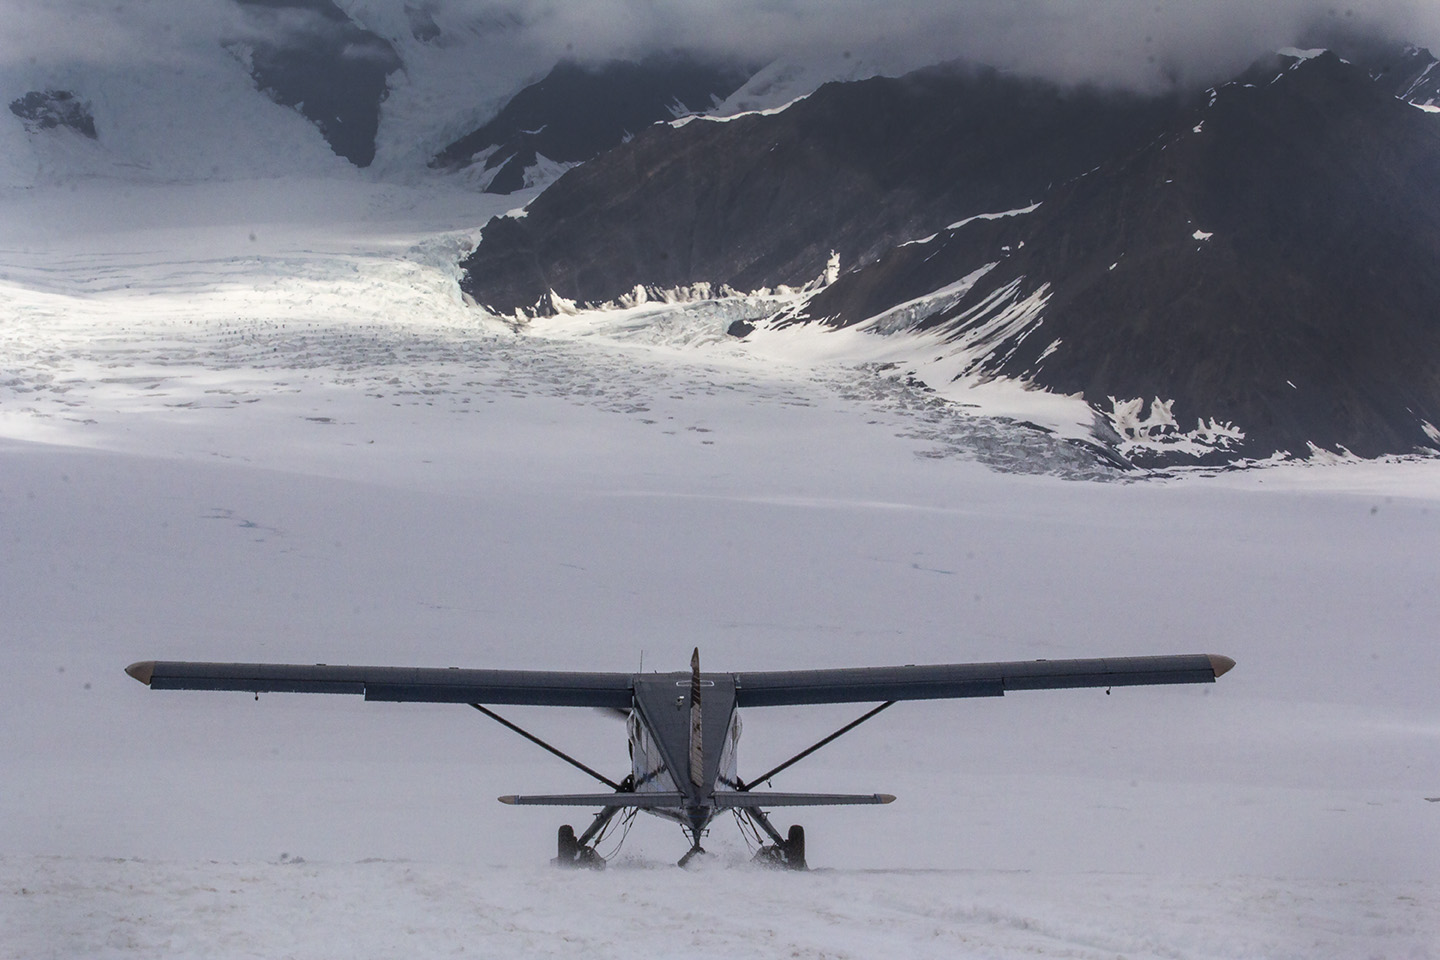 best aircraft photography on snow